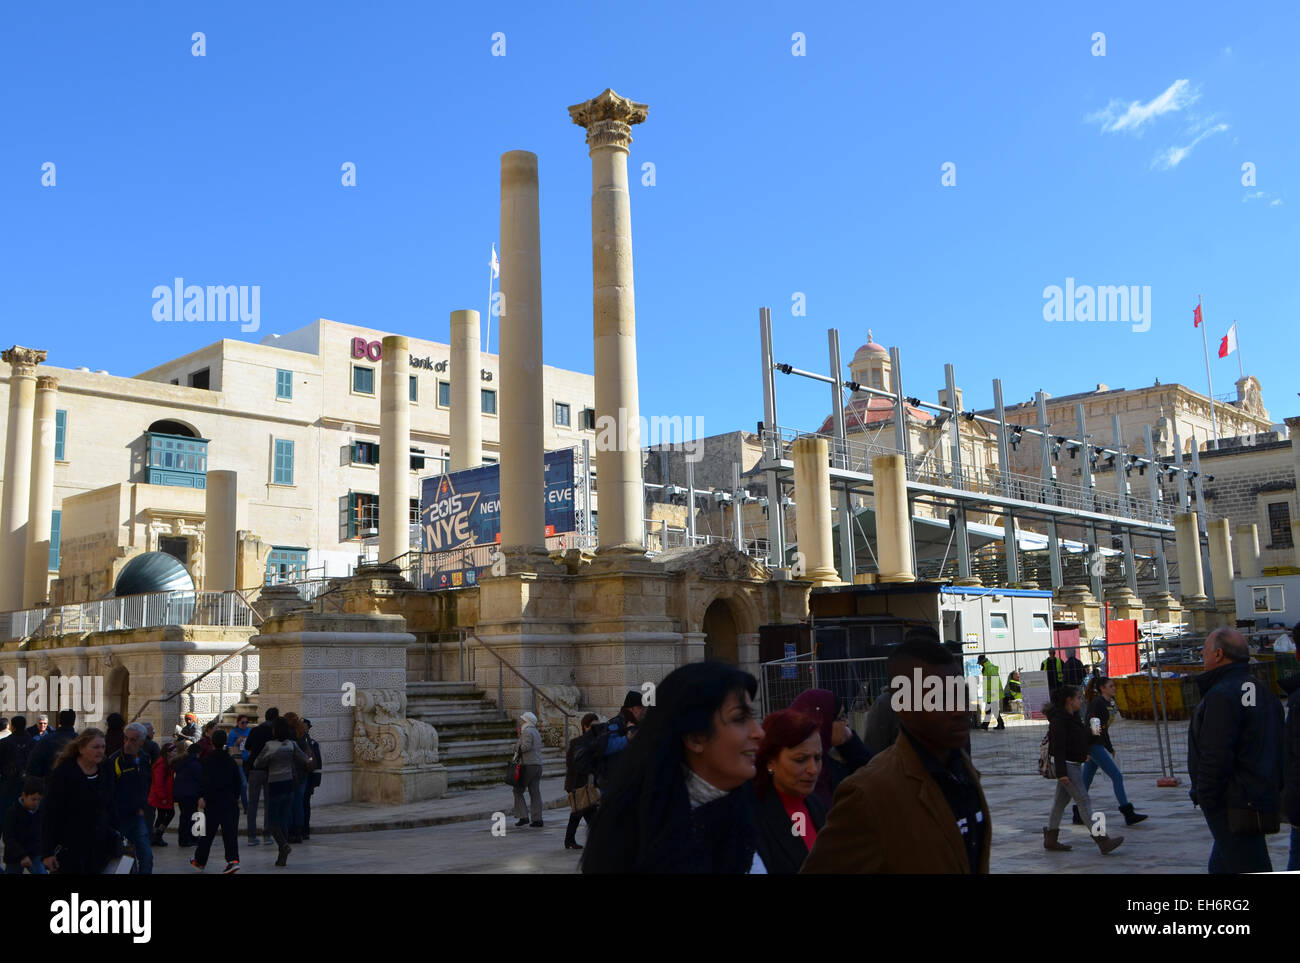 Malta, Valletta. So much history on this island that even the capital has to acccomodate ancient pillars inside - Stock Image